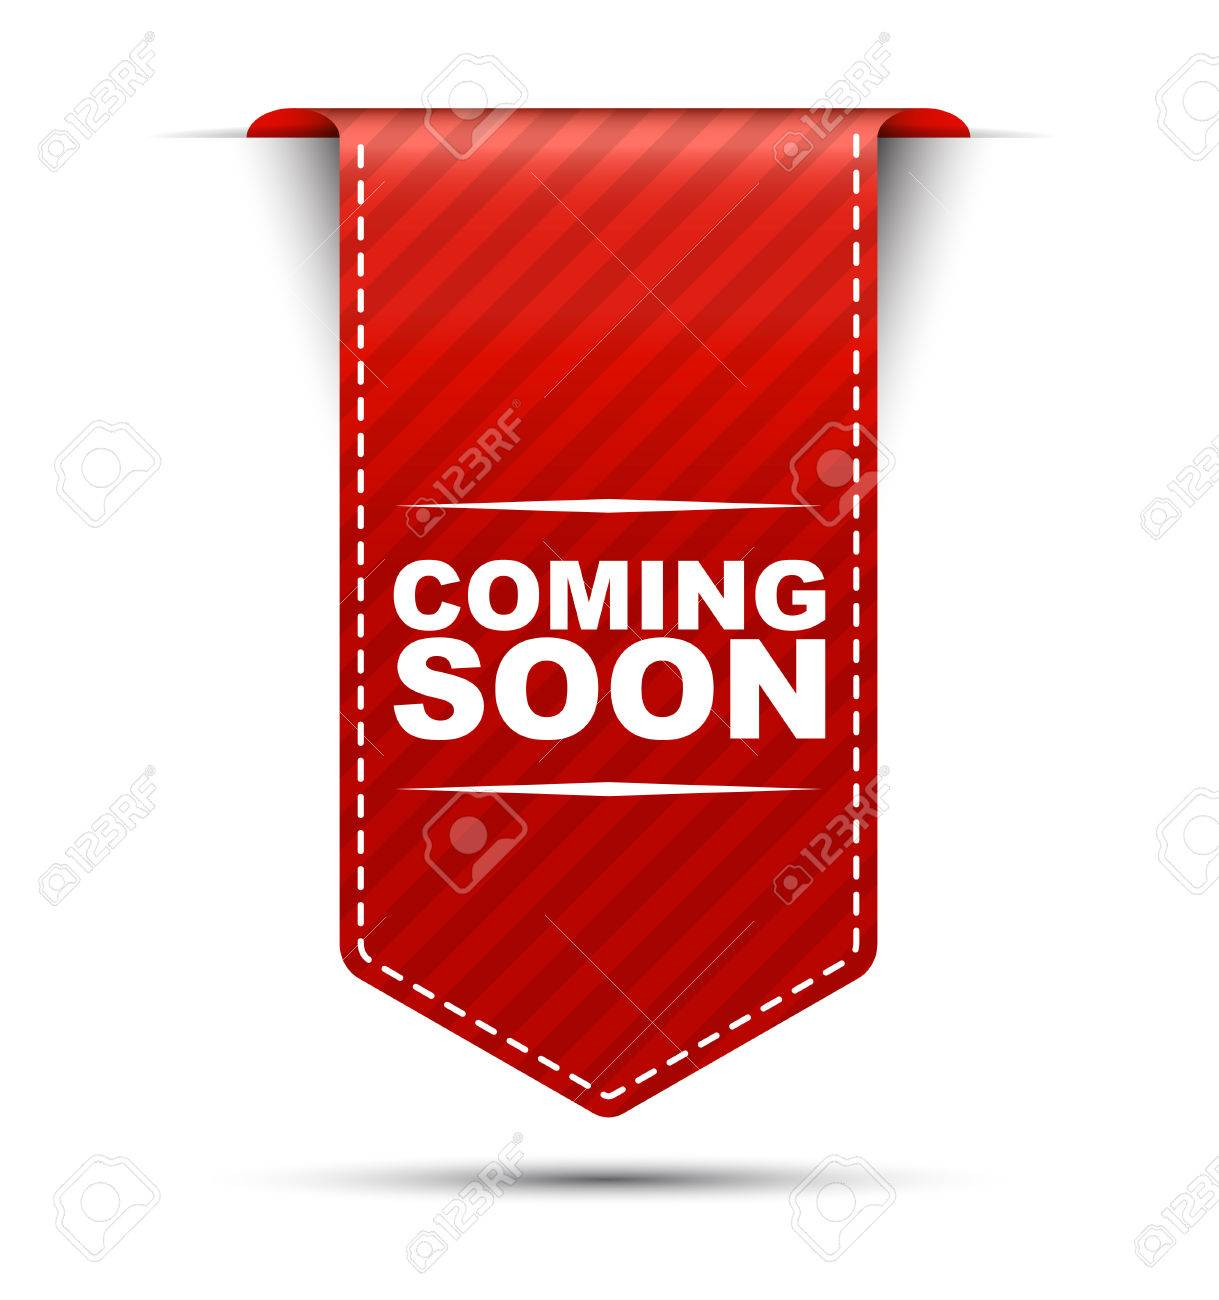 This is red vector banner design coming soon - 52963685